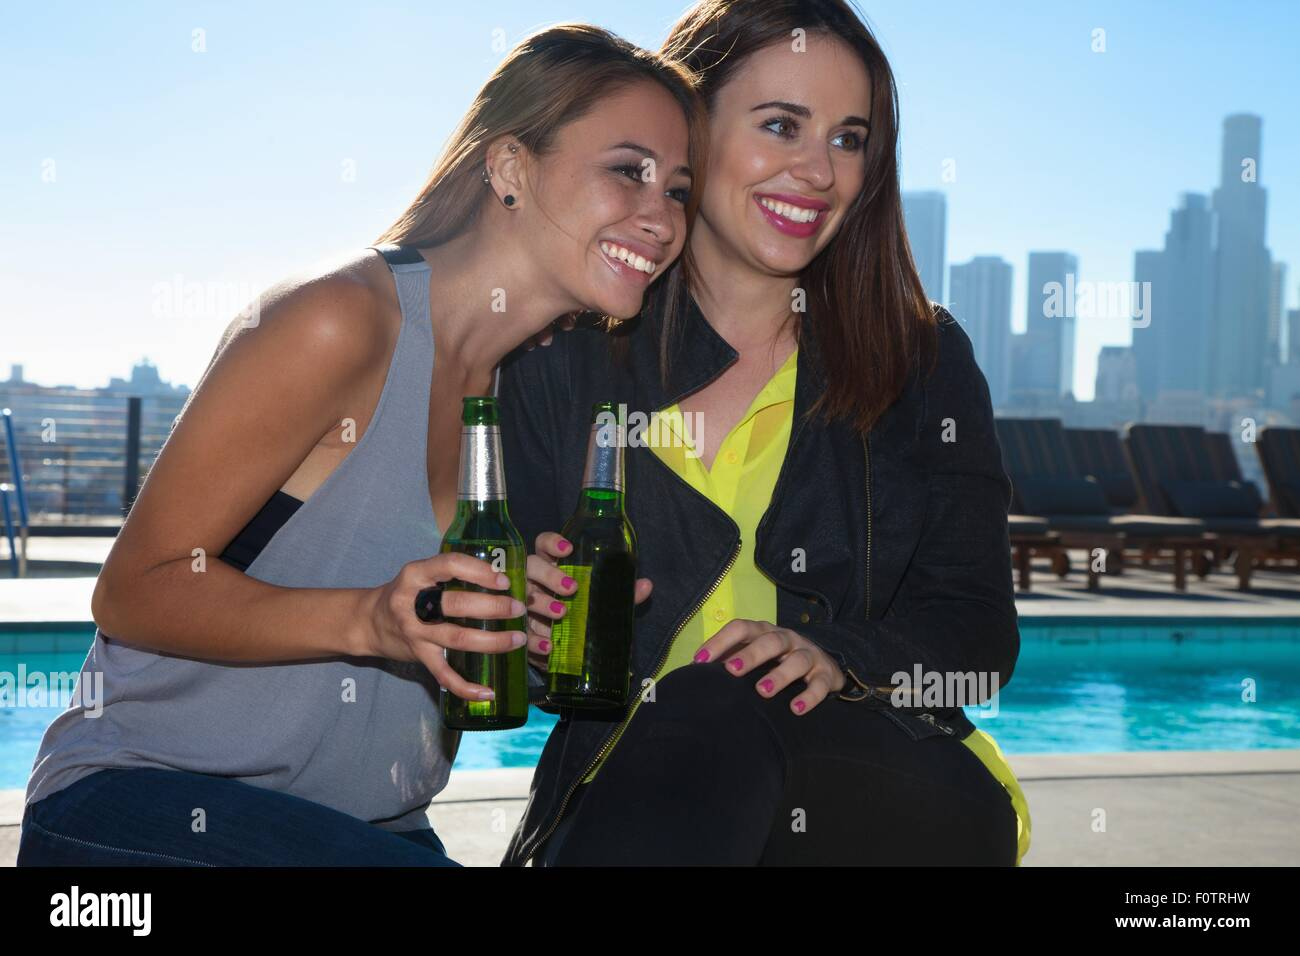 Portrait of two young female friends drinking beers at rooftop bar with Los Angeles skyline, USA - Stock Image